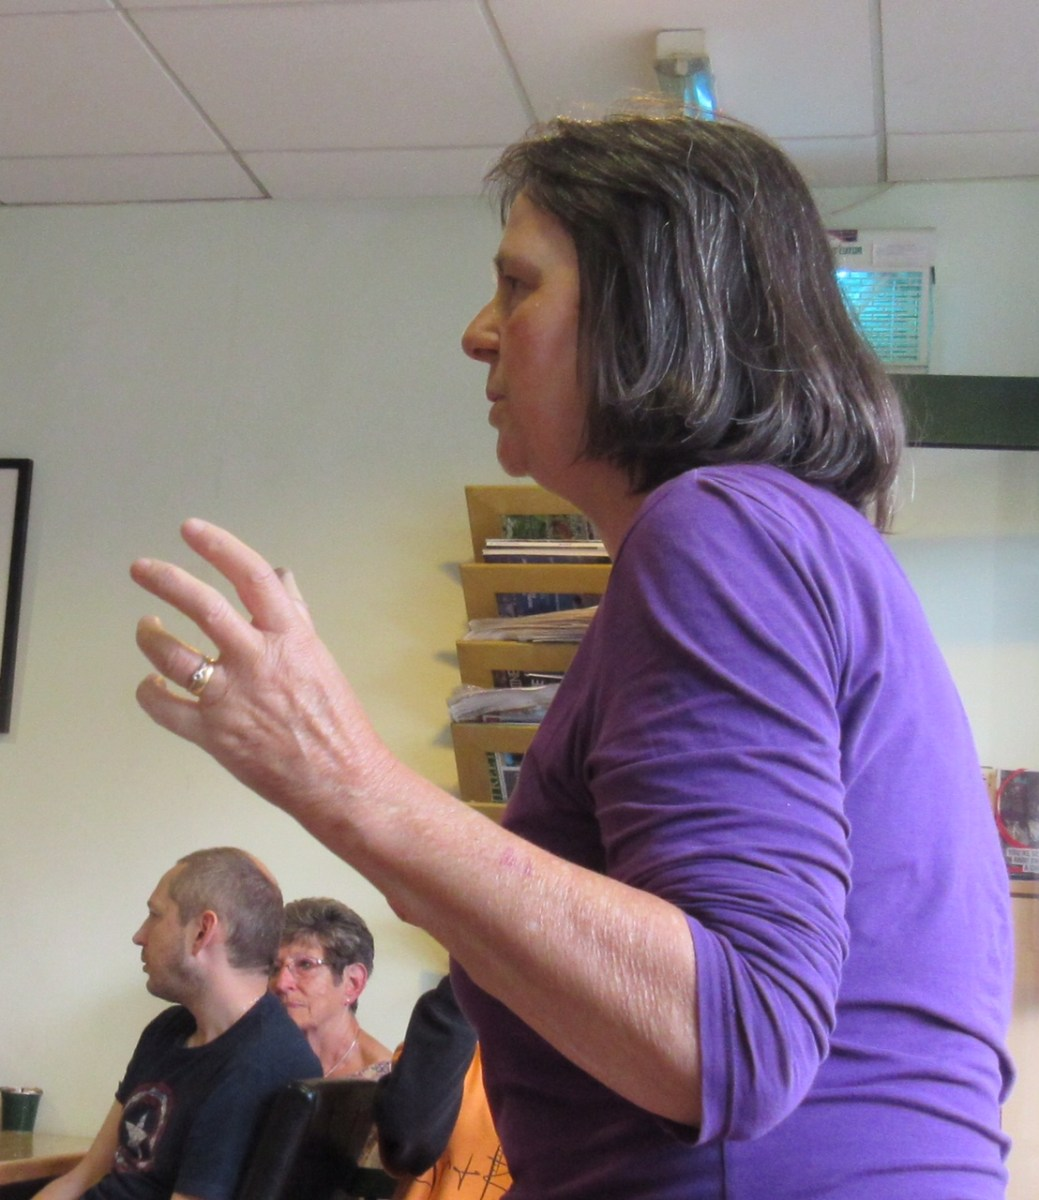 ArtBeat 2016 - Poetry, Tea and Toast at Fingerprints Delicafe